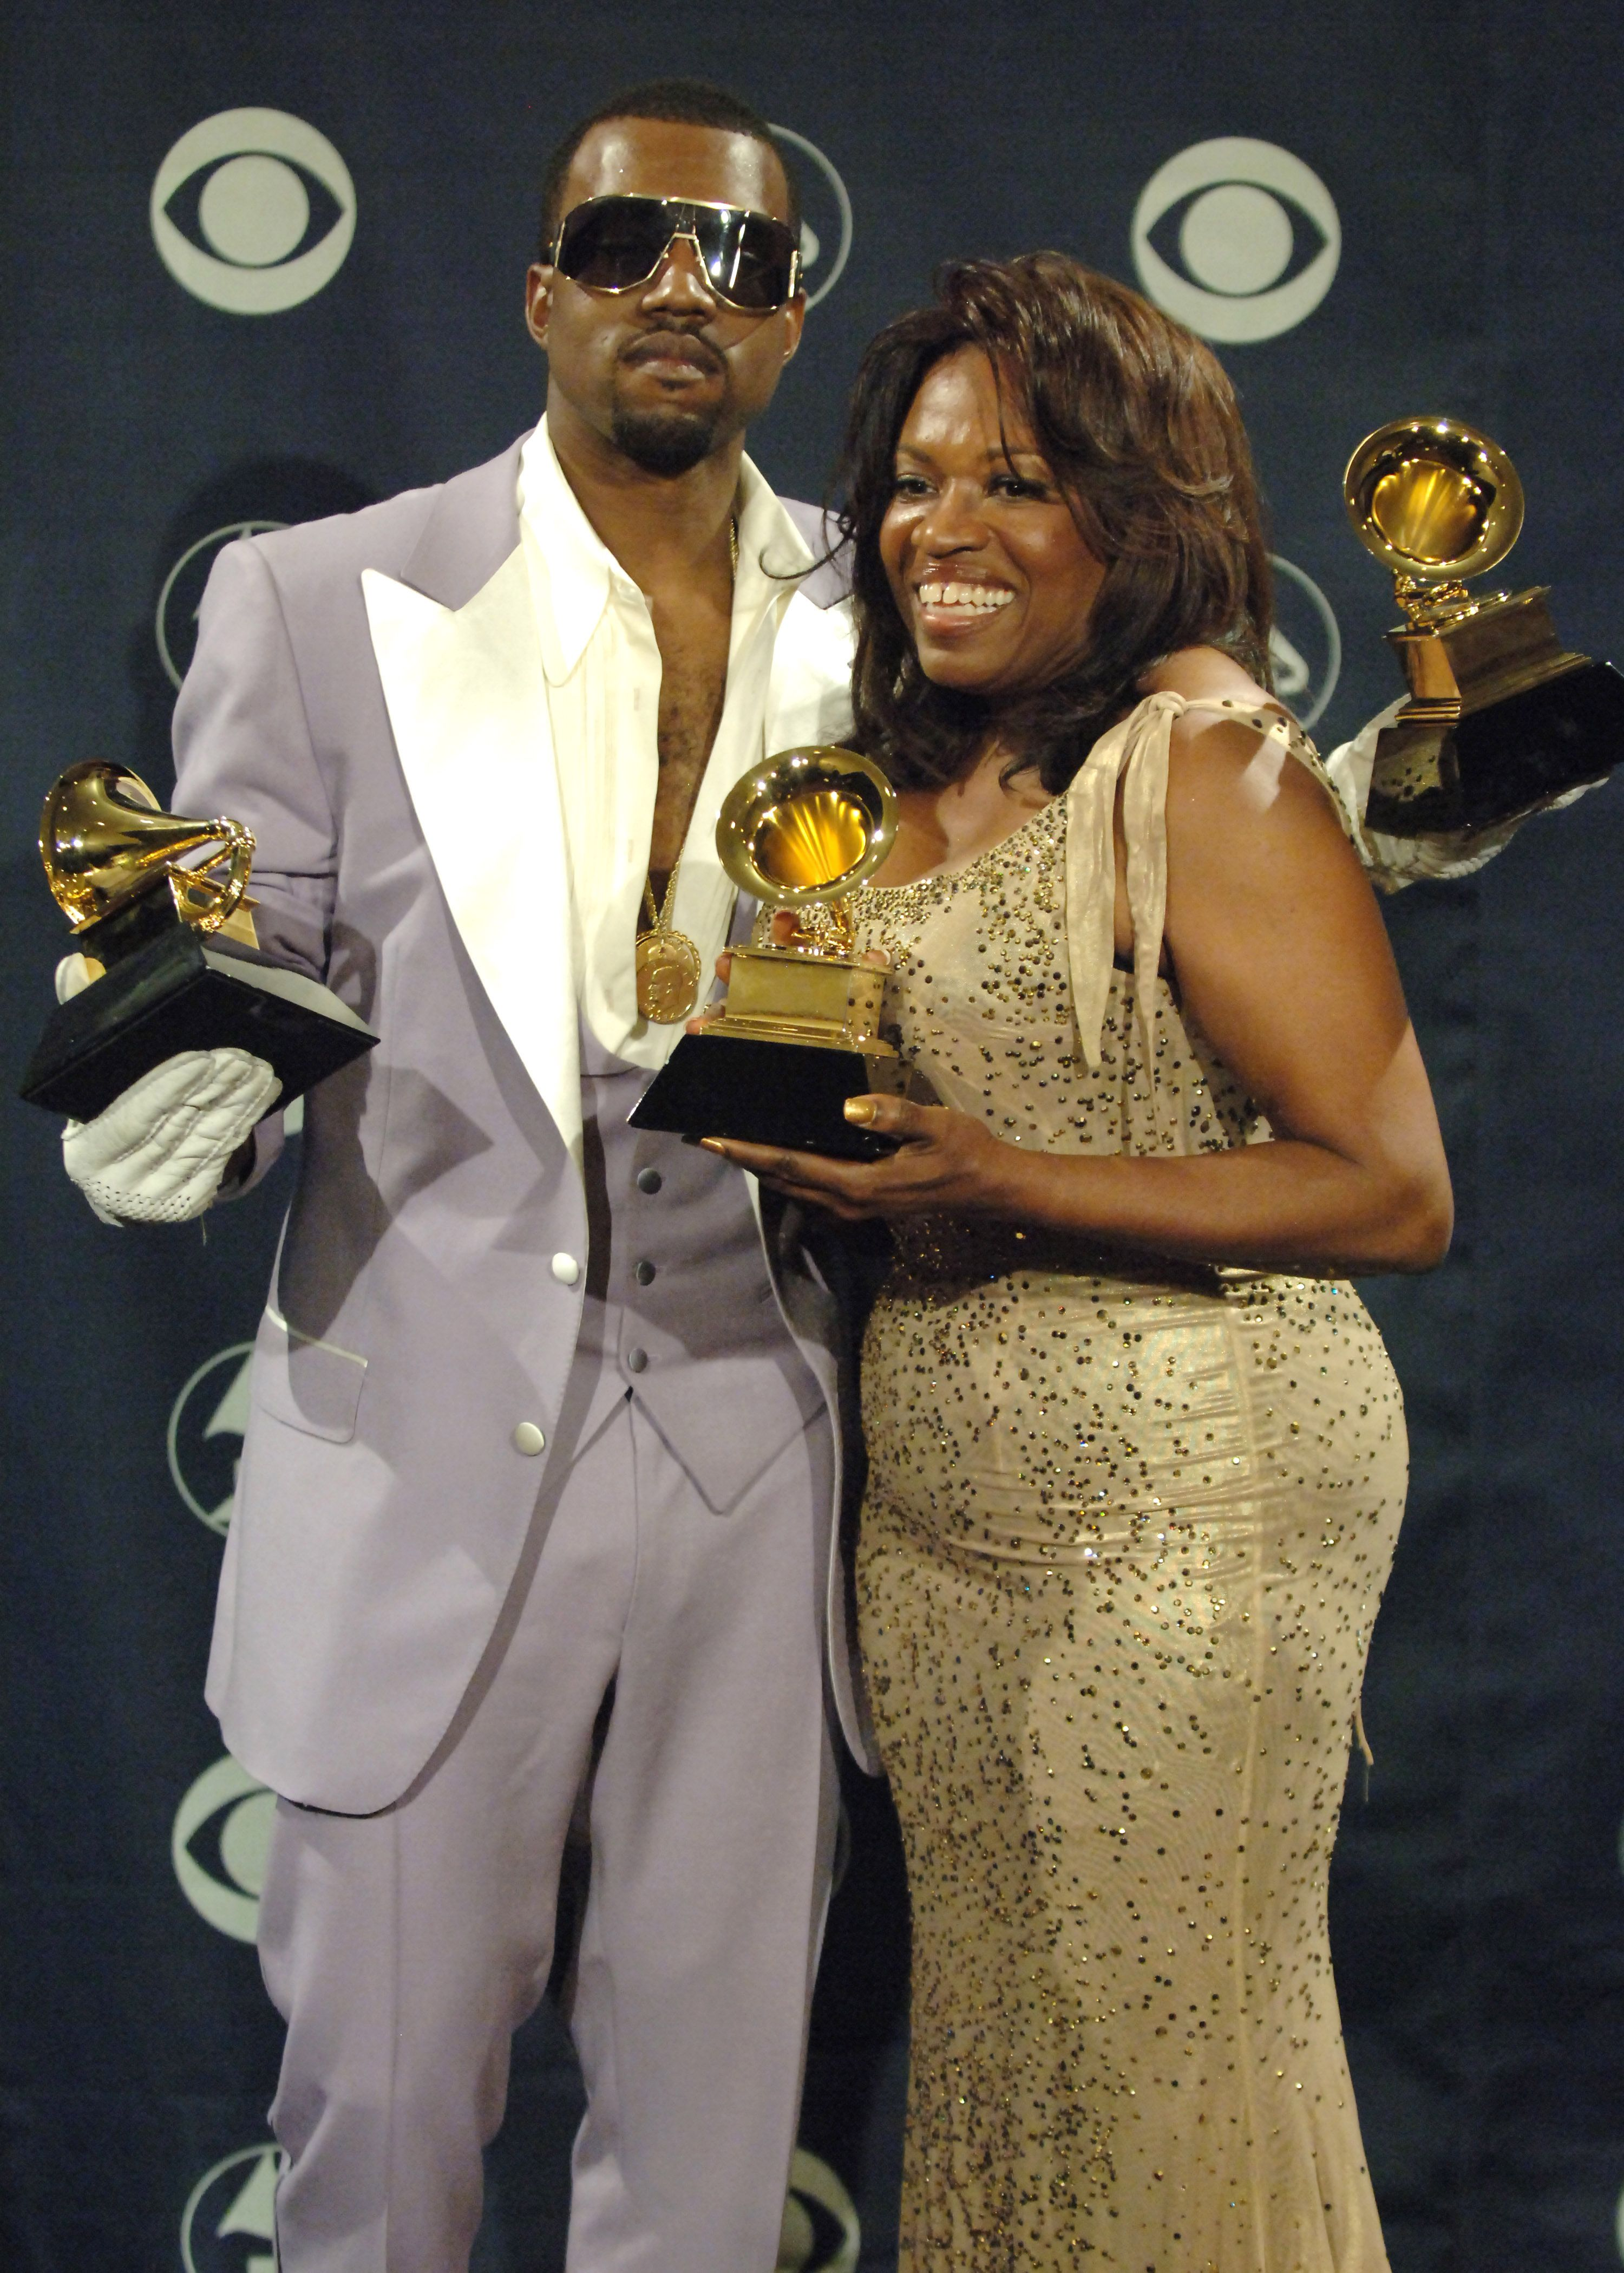 Kanye West and mother Donda West at the 48th Annual GRAMMY Awards in 2006 | Source: Getty Images